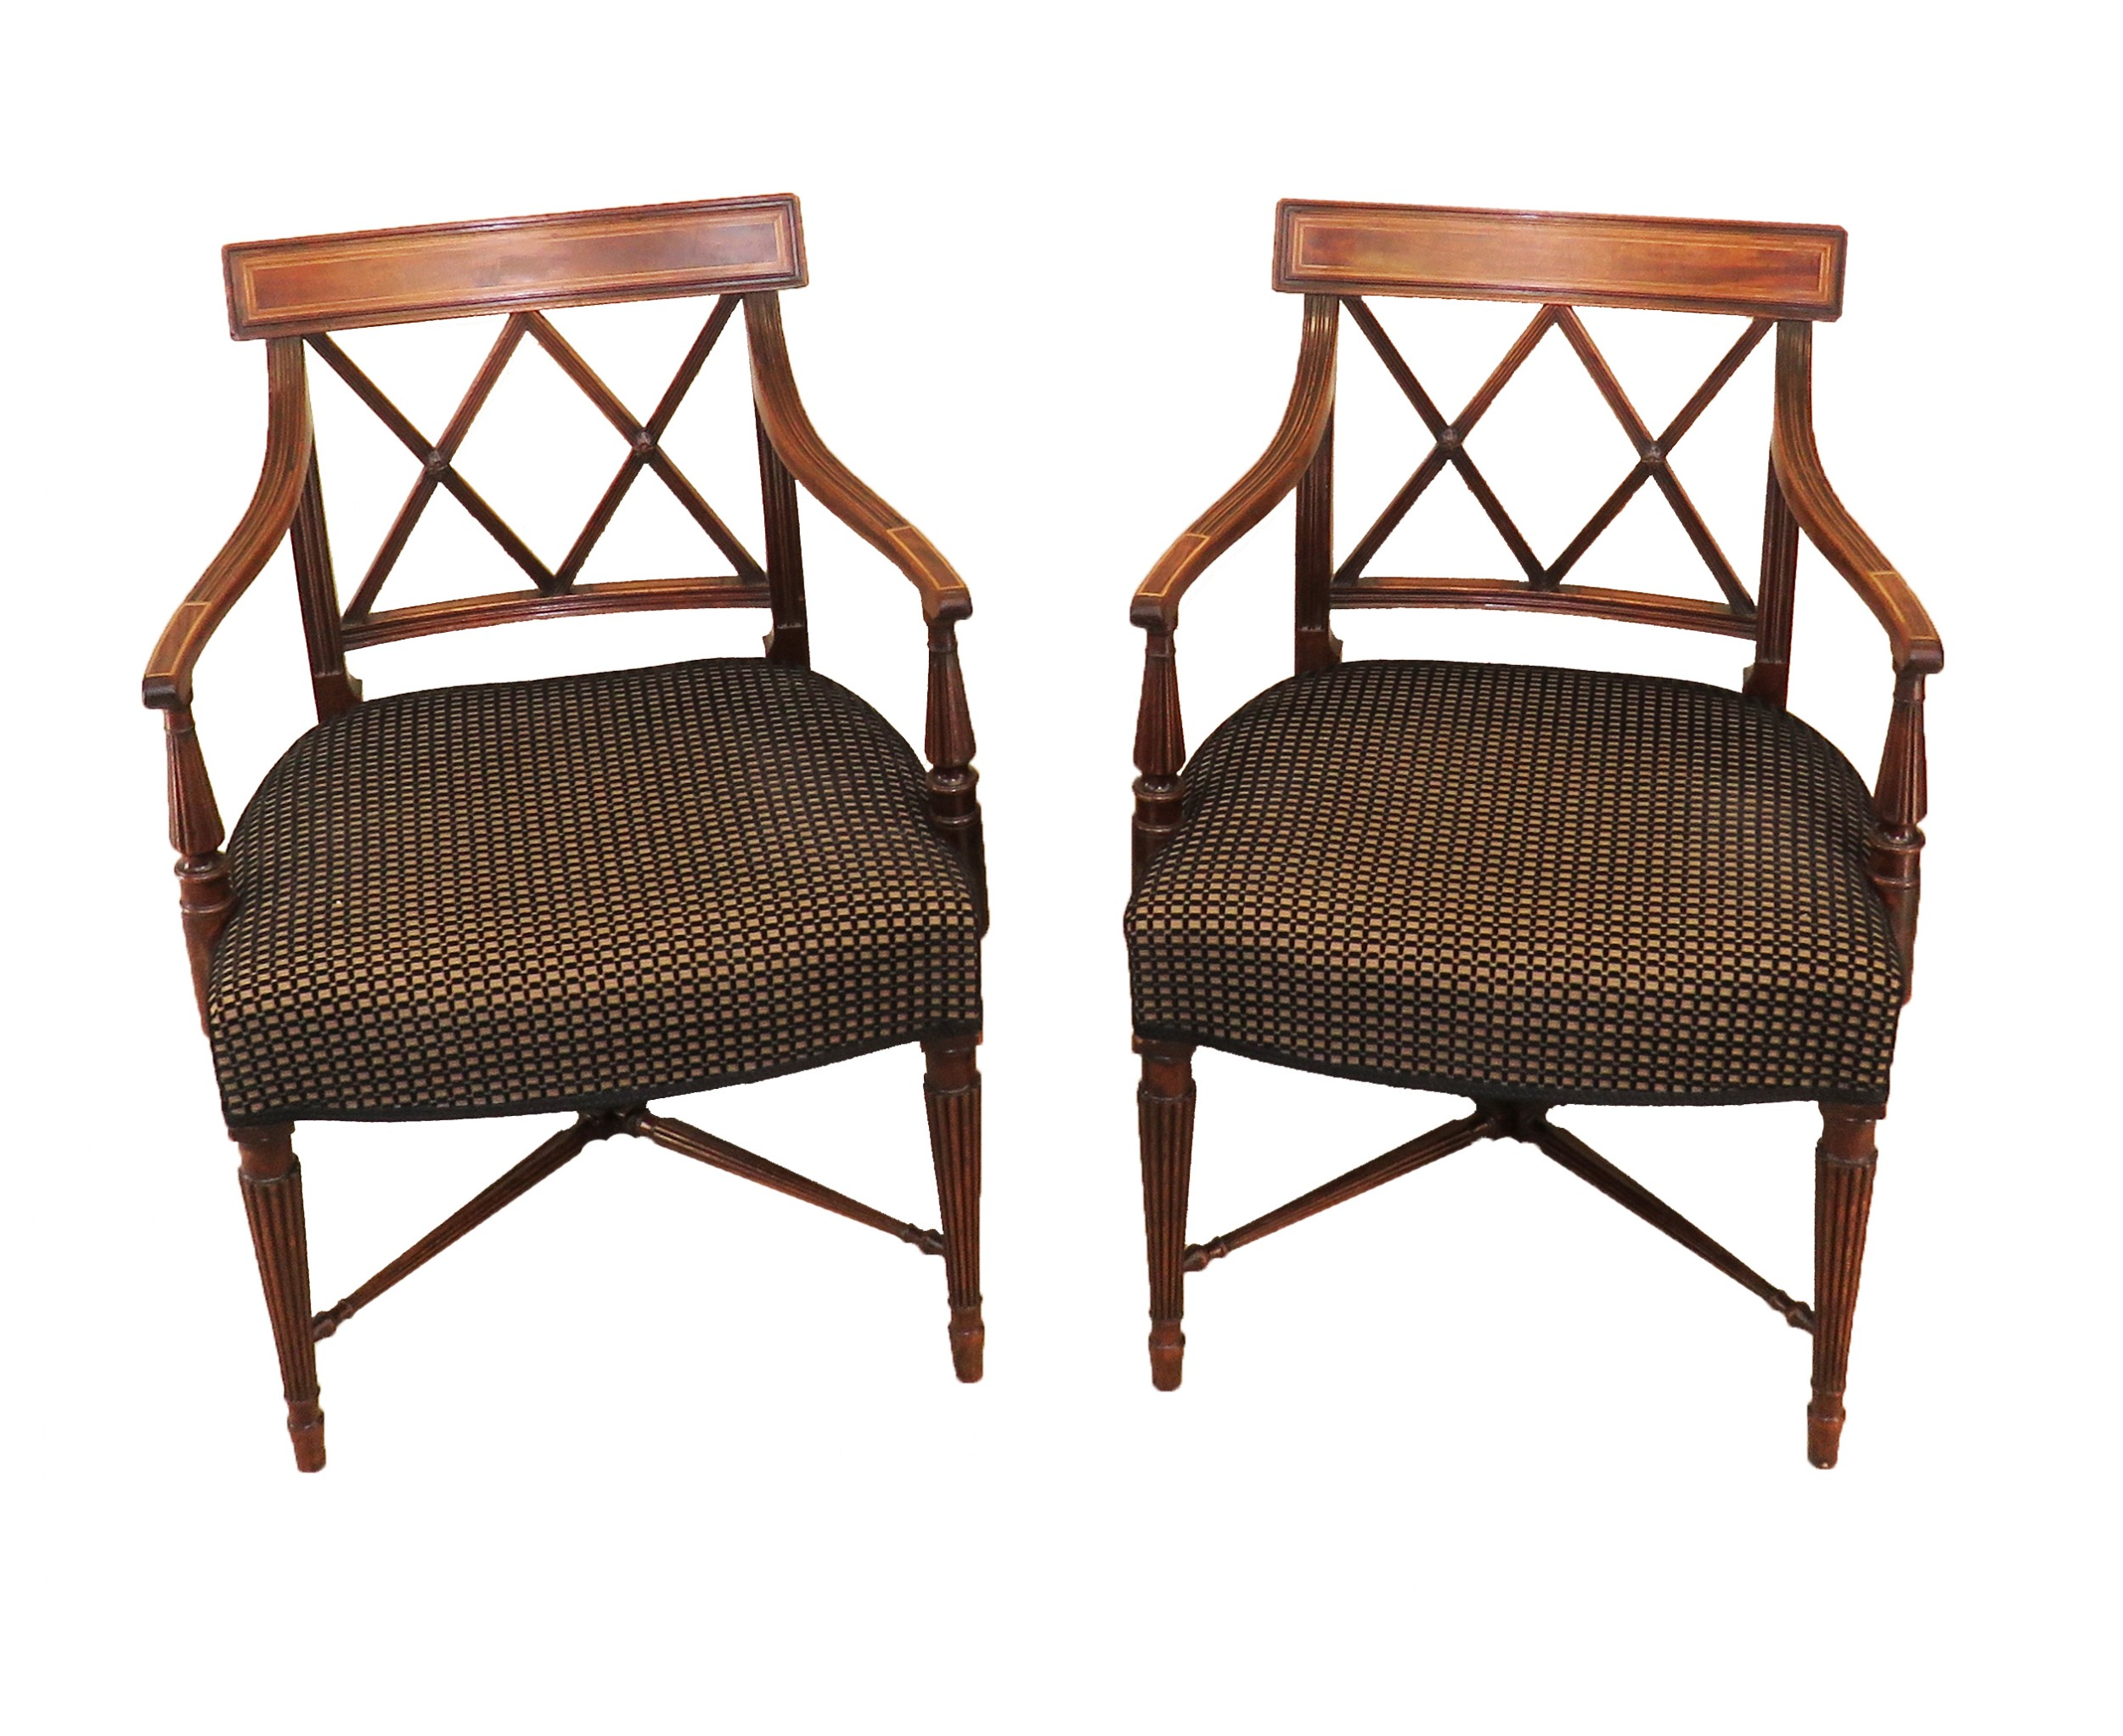 18th century sheraton period pair of georgian carver armchairs